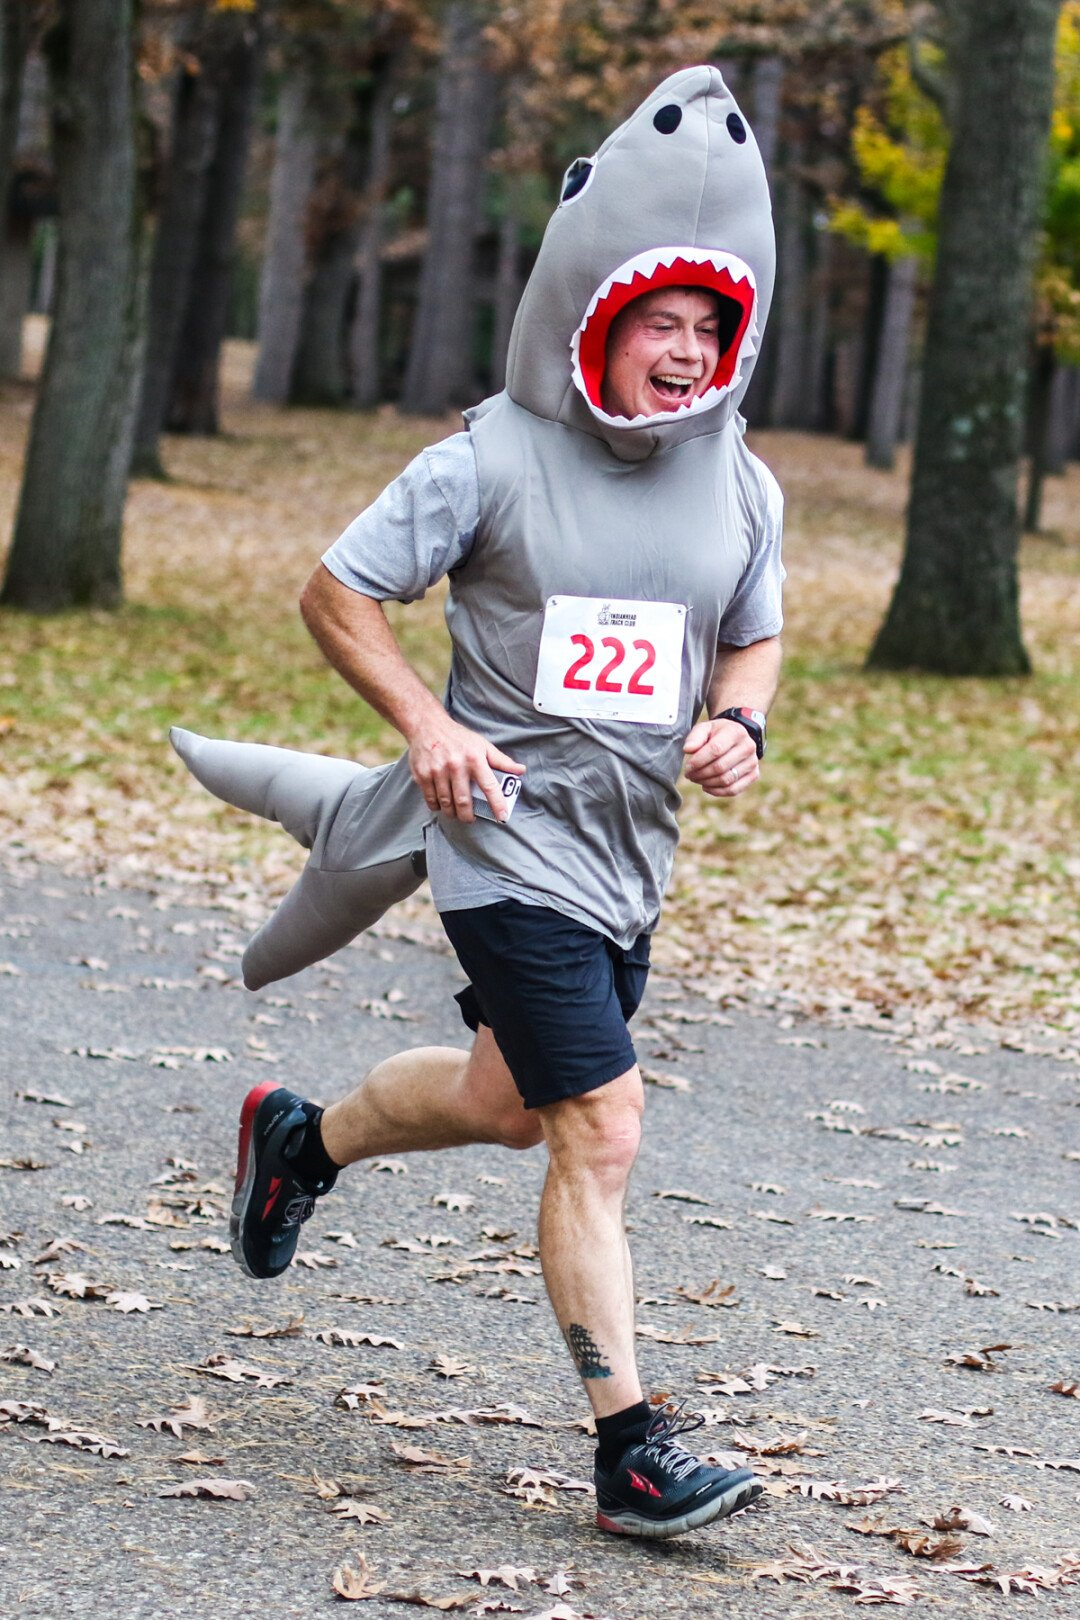 BET HE'S EVEN FASTER IN THE WATER. The Carson Park Five and Ten + Kid's BOO-gie Run took place on Saturday, Oct. 29, in Eau Claire where kids and adults ran in costume.